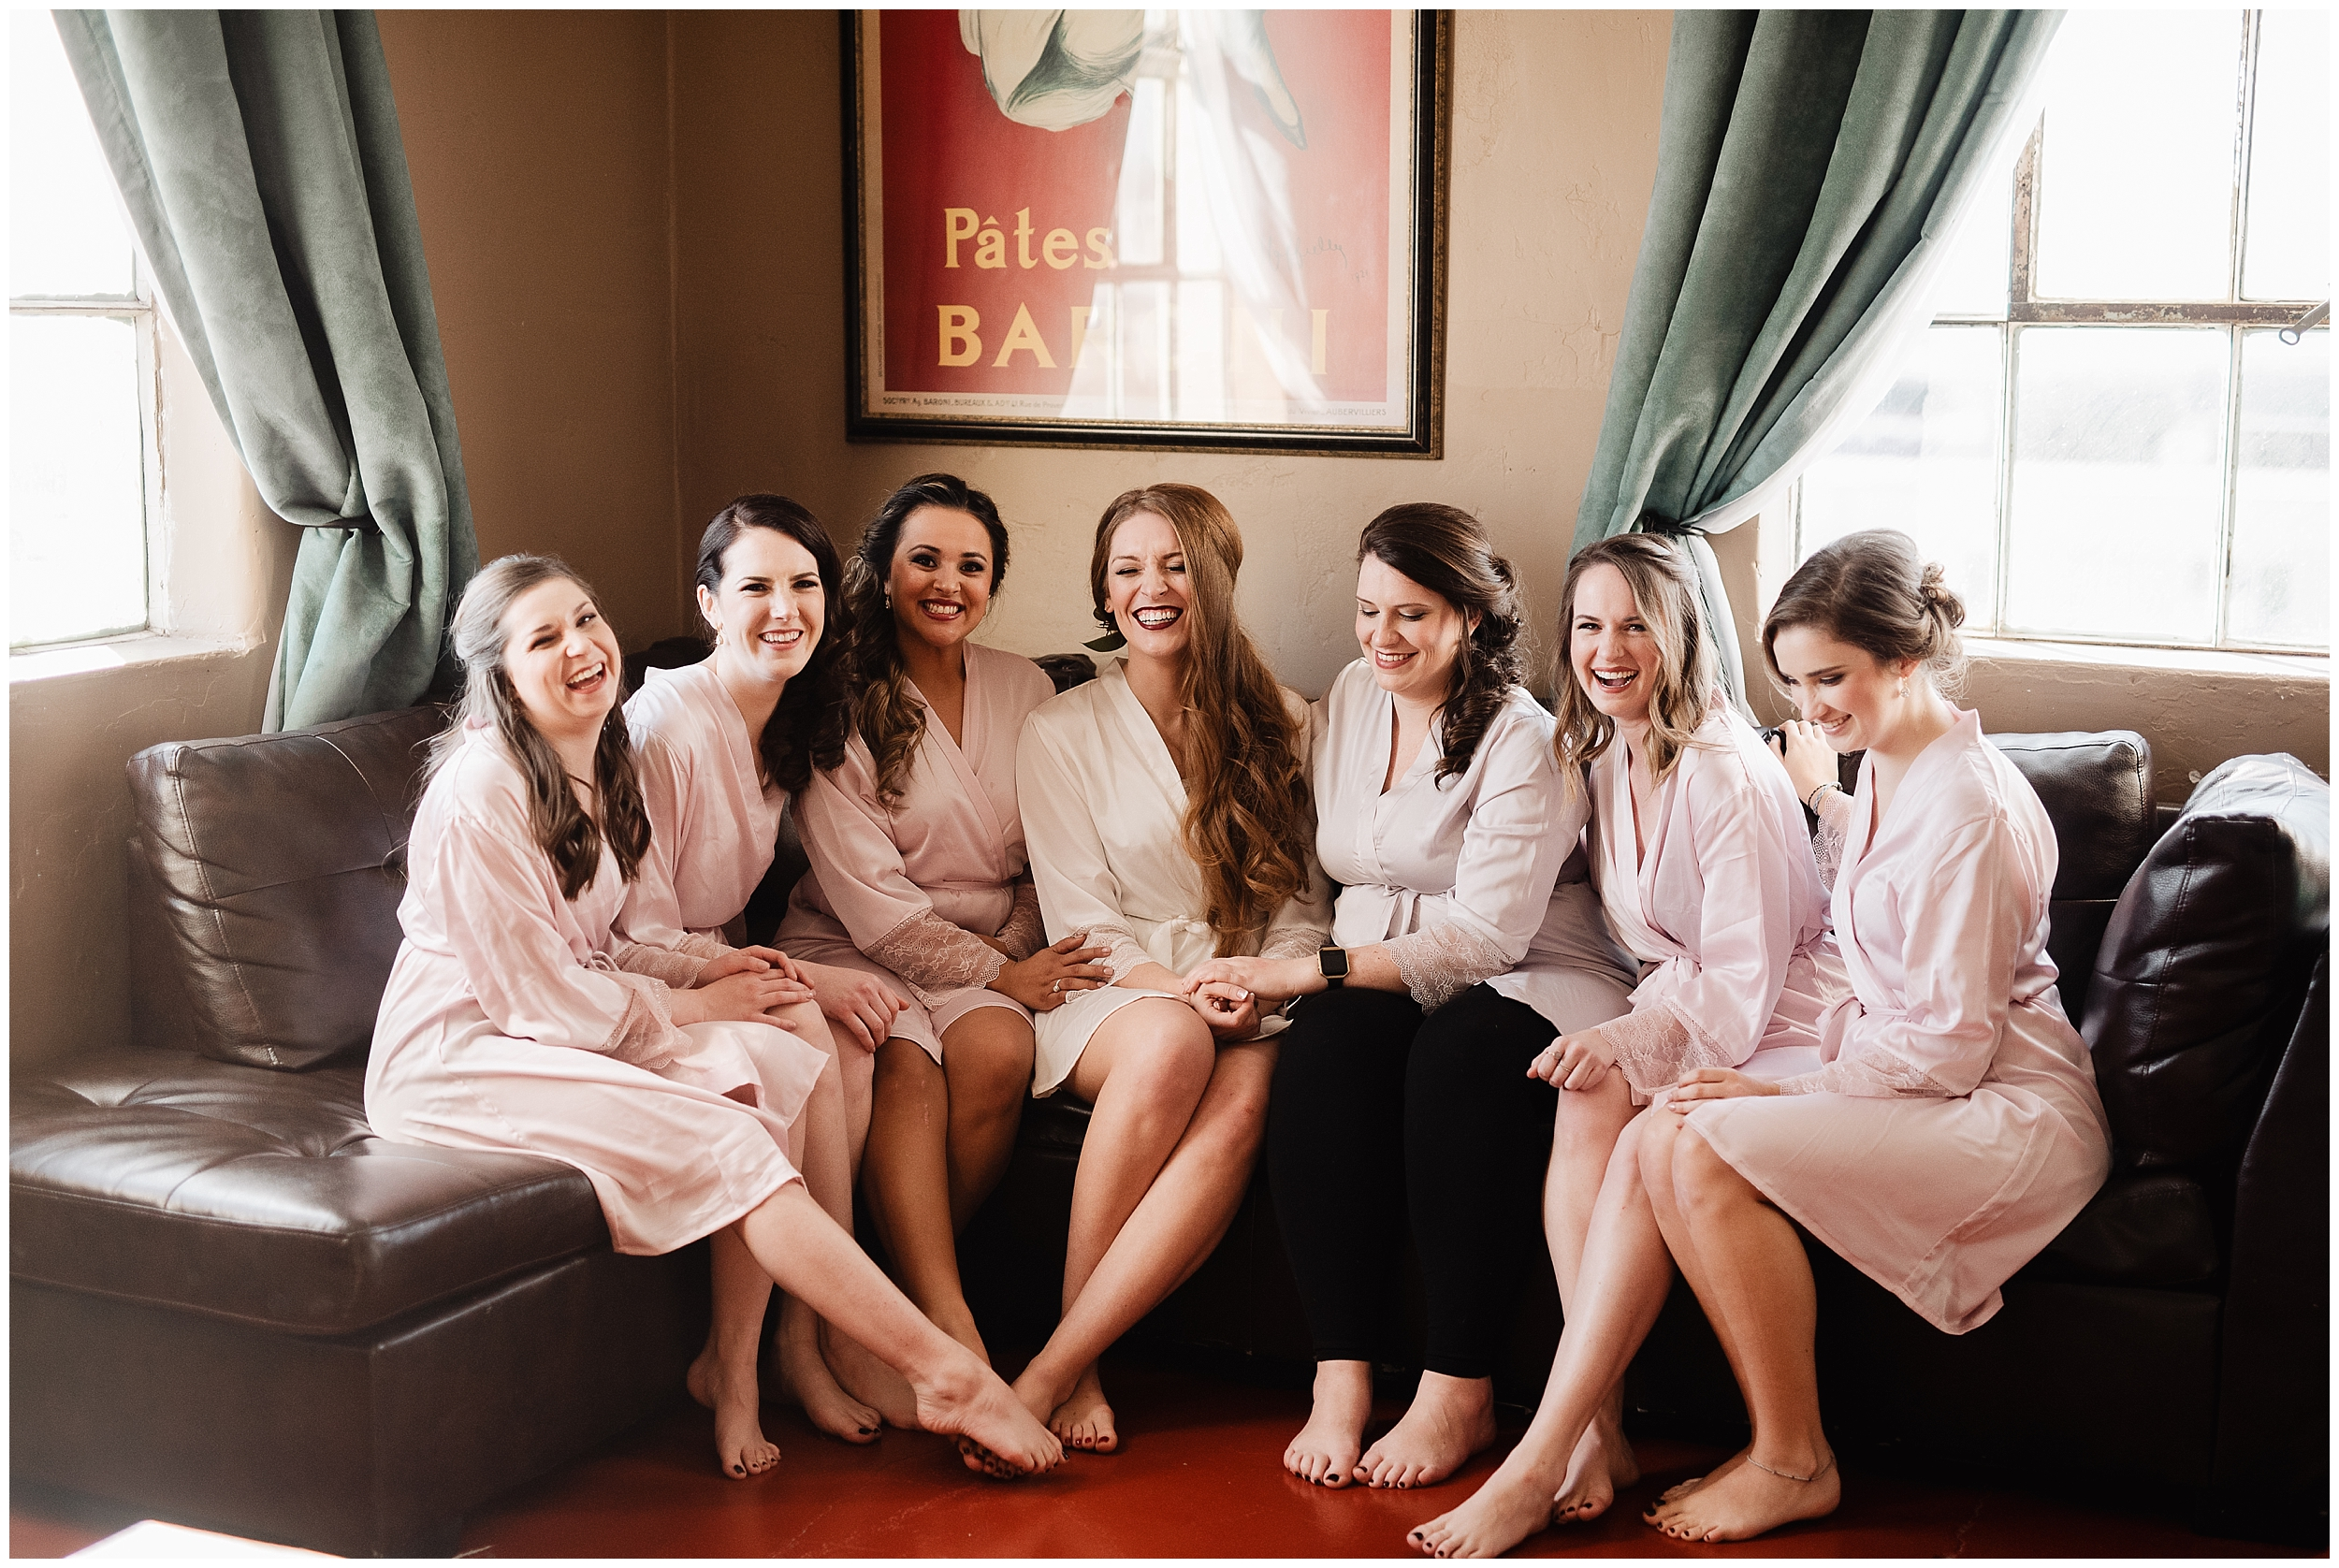 oklahoma wedding photographer hair makeup robes matching outfits bridal party getting ready bridesmaids maid of honor dressing buttons lace mother of bride